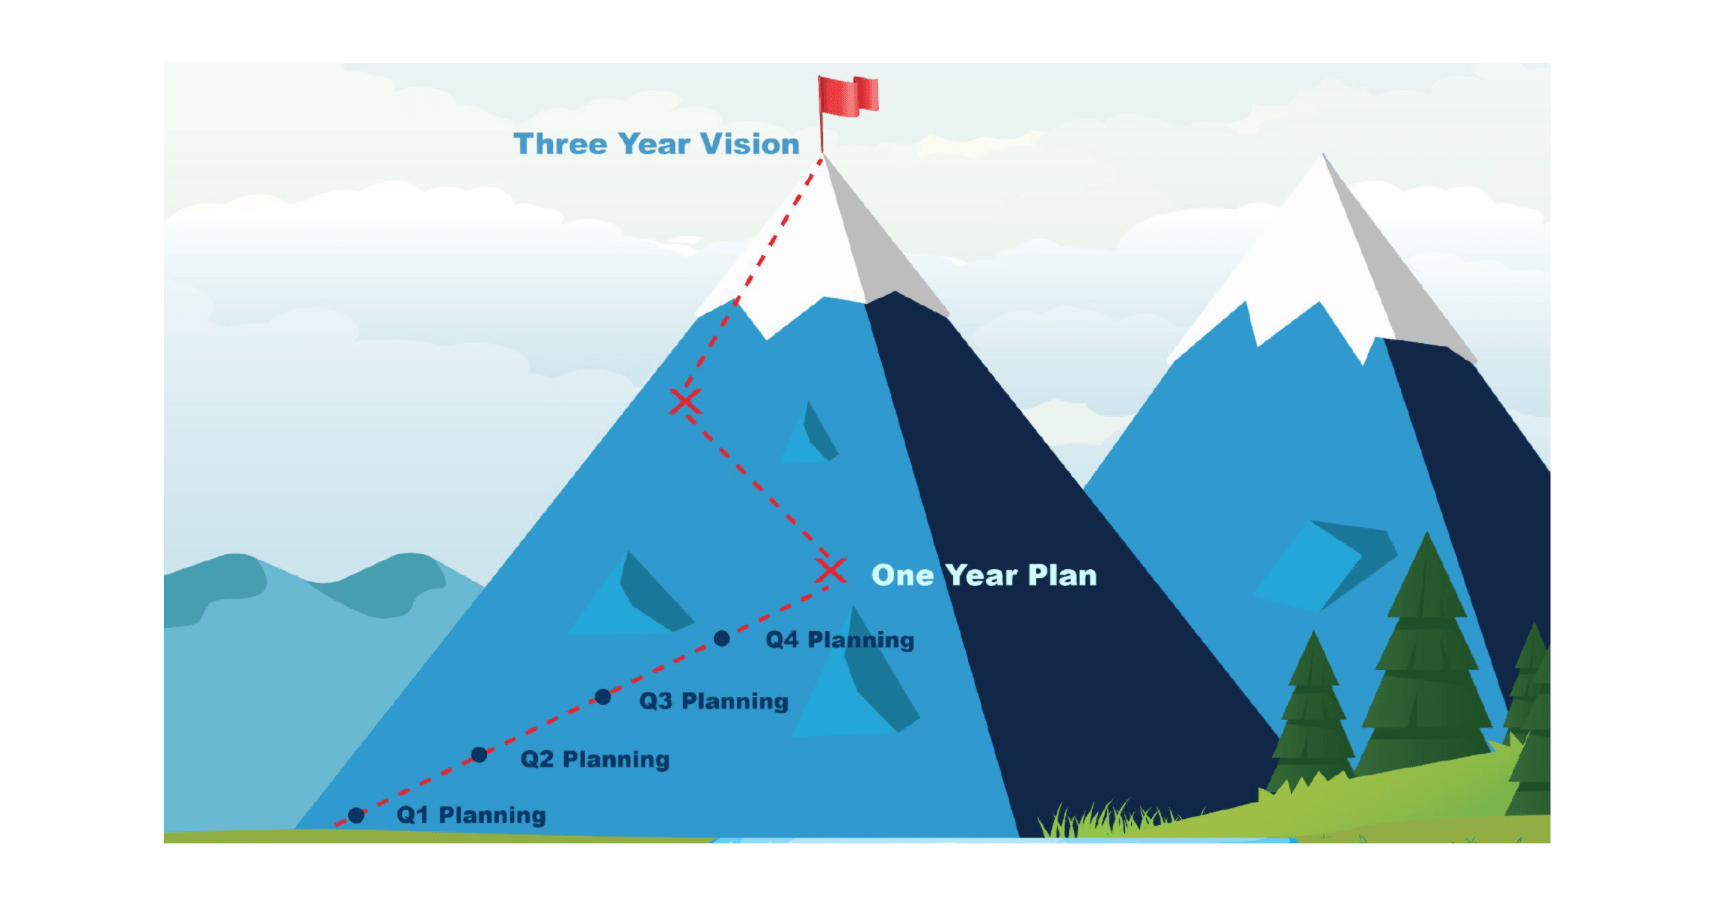 Annual Planning for Seed Stage Companies - Image for Blog Post